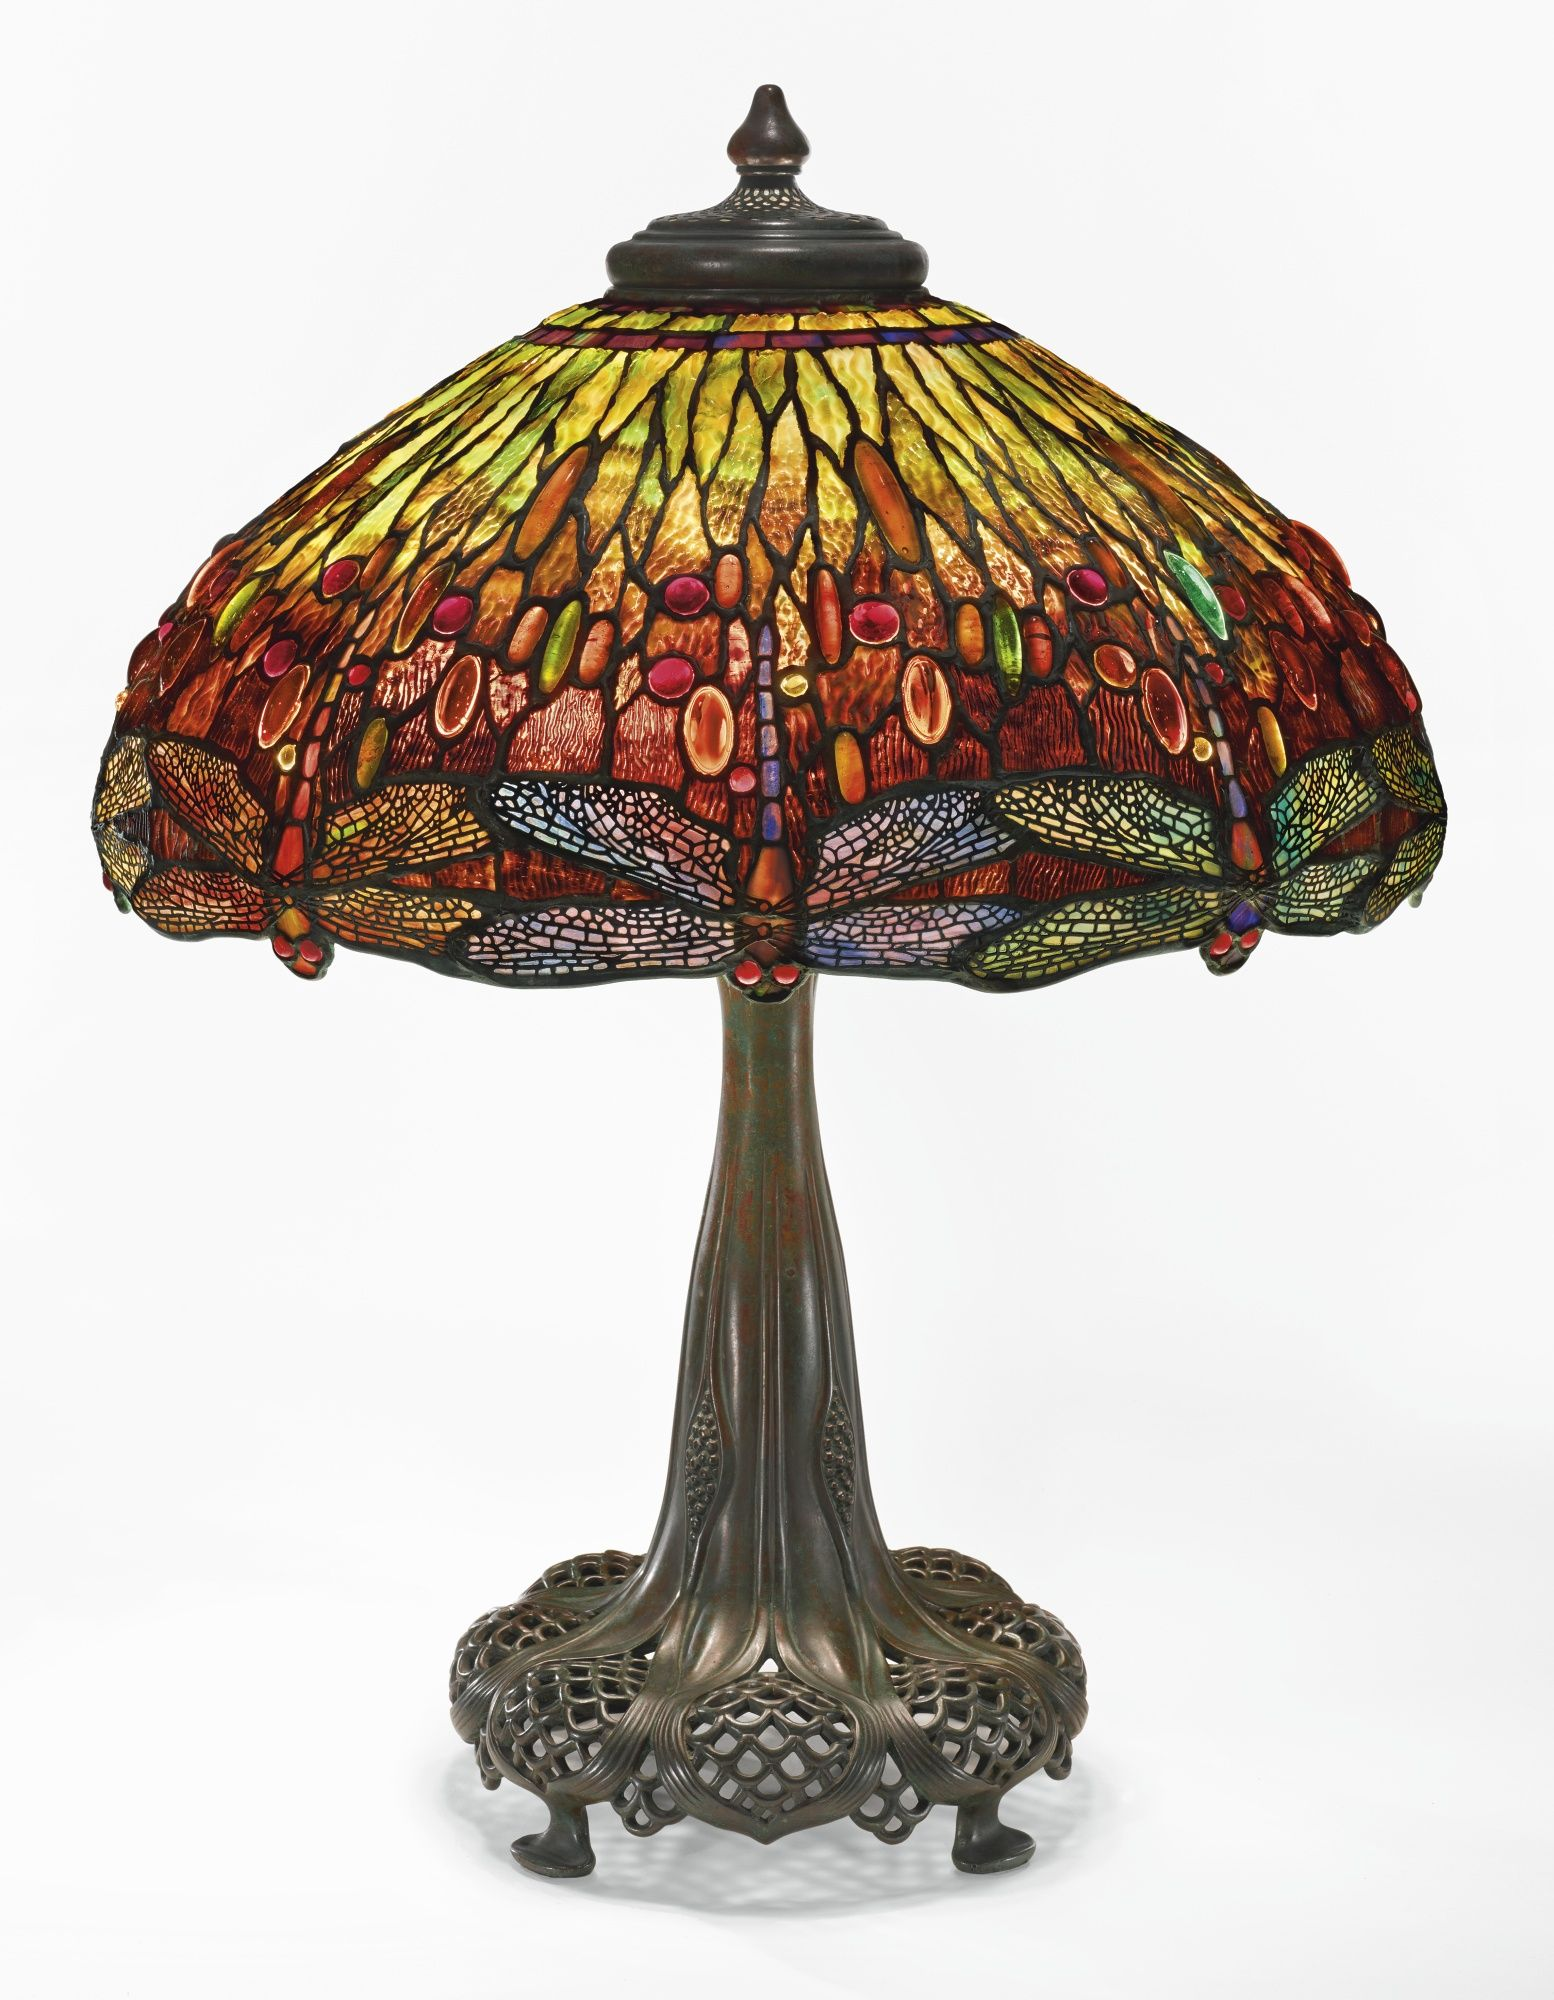 tiffany studios important dragonfly table lamp from the miniature accent lamps collection andrew carnegie shade impressed telesco base granite top coffee clearance sectionals